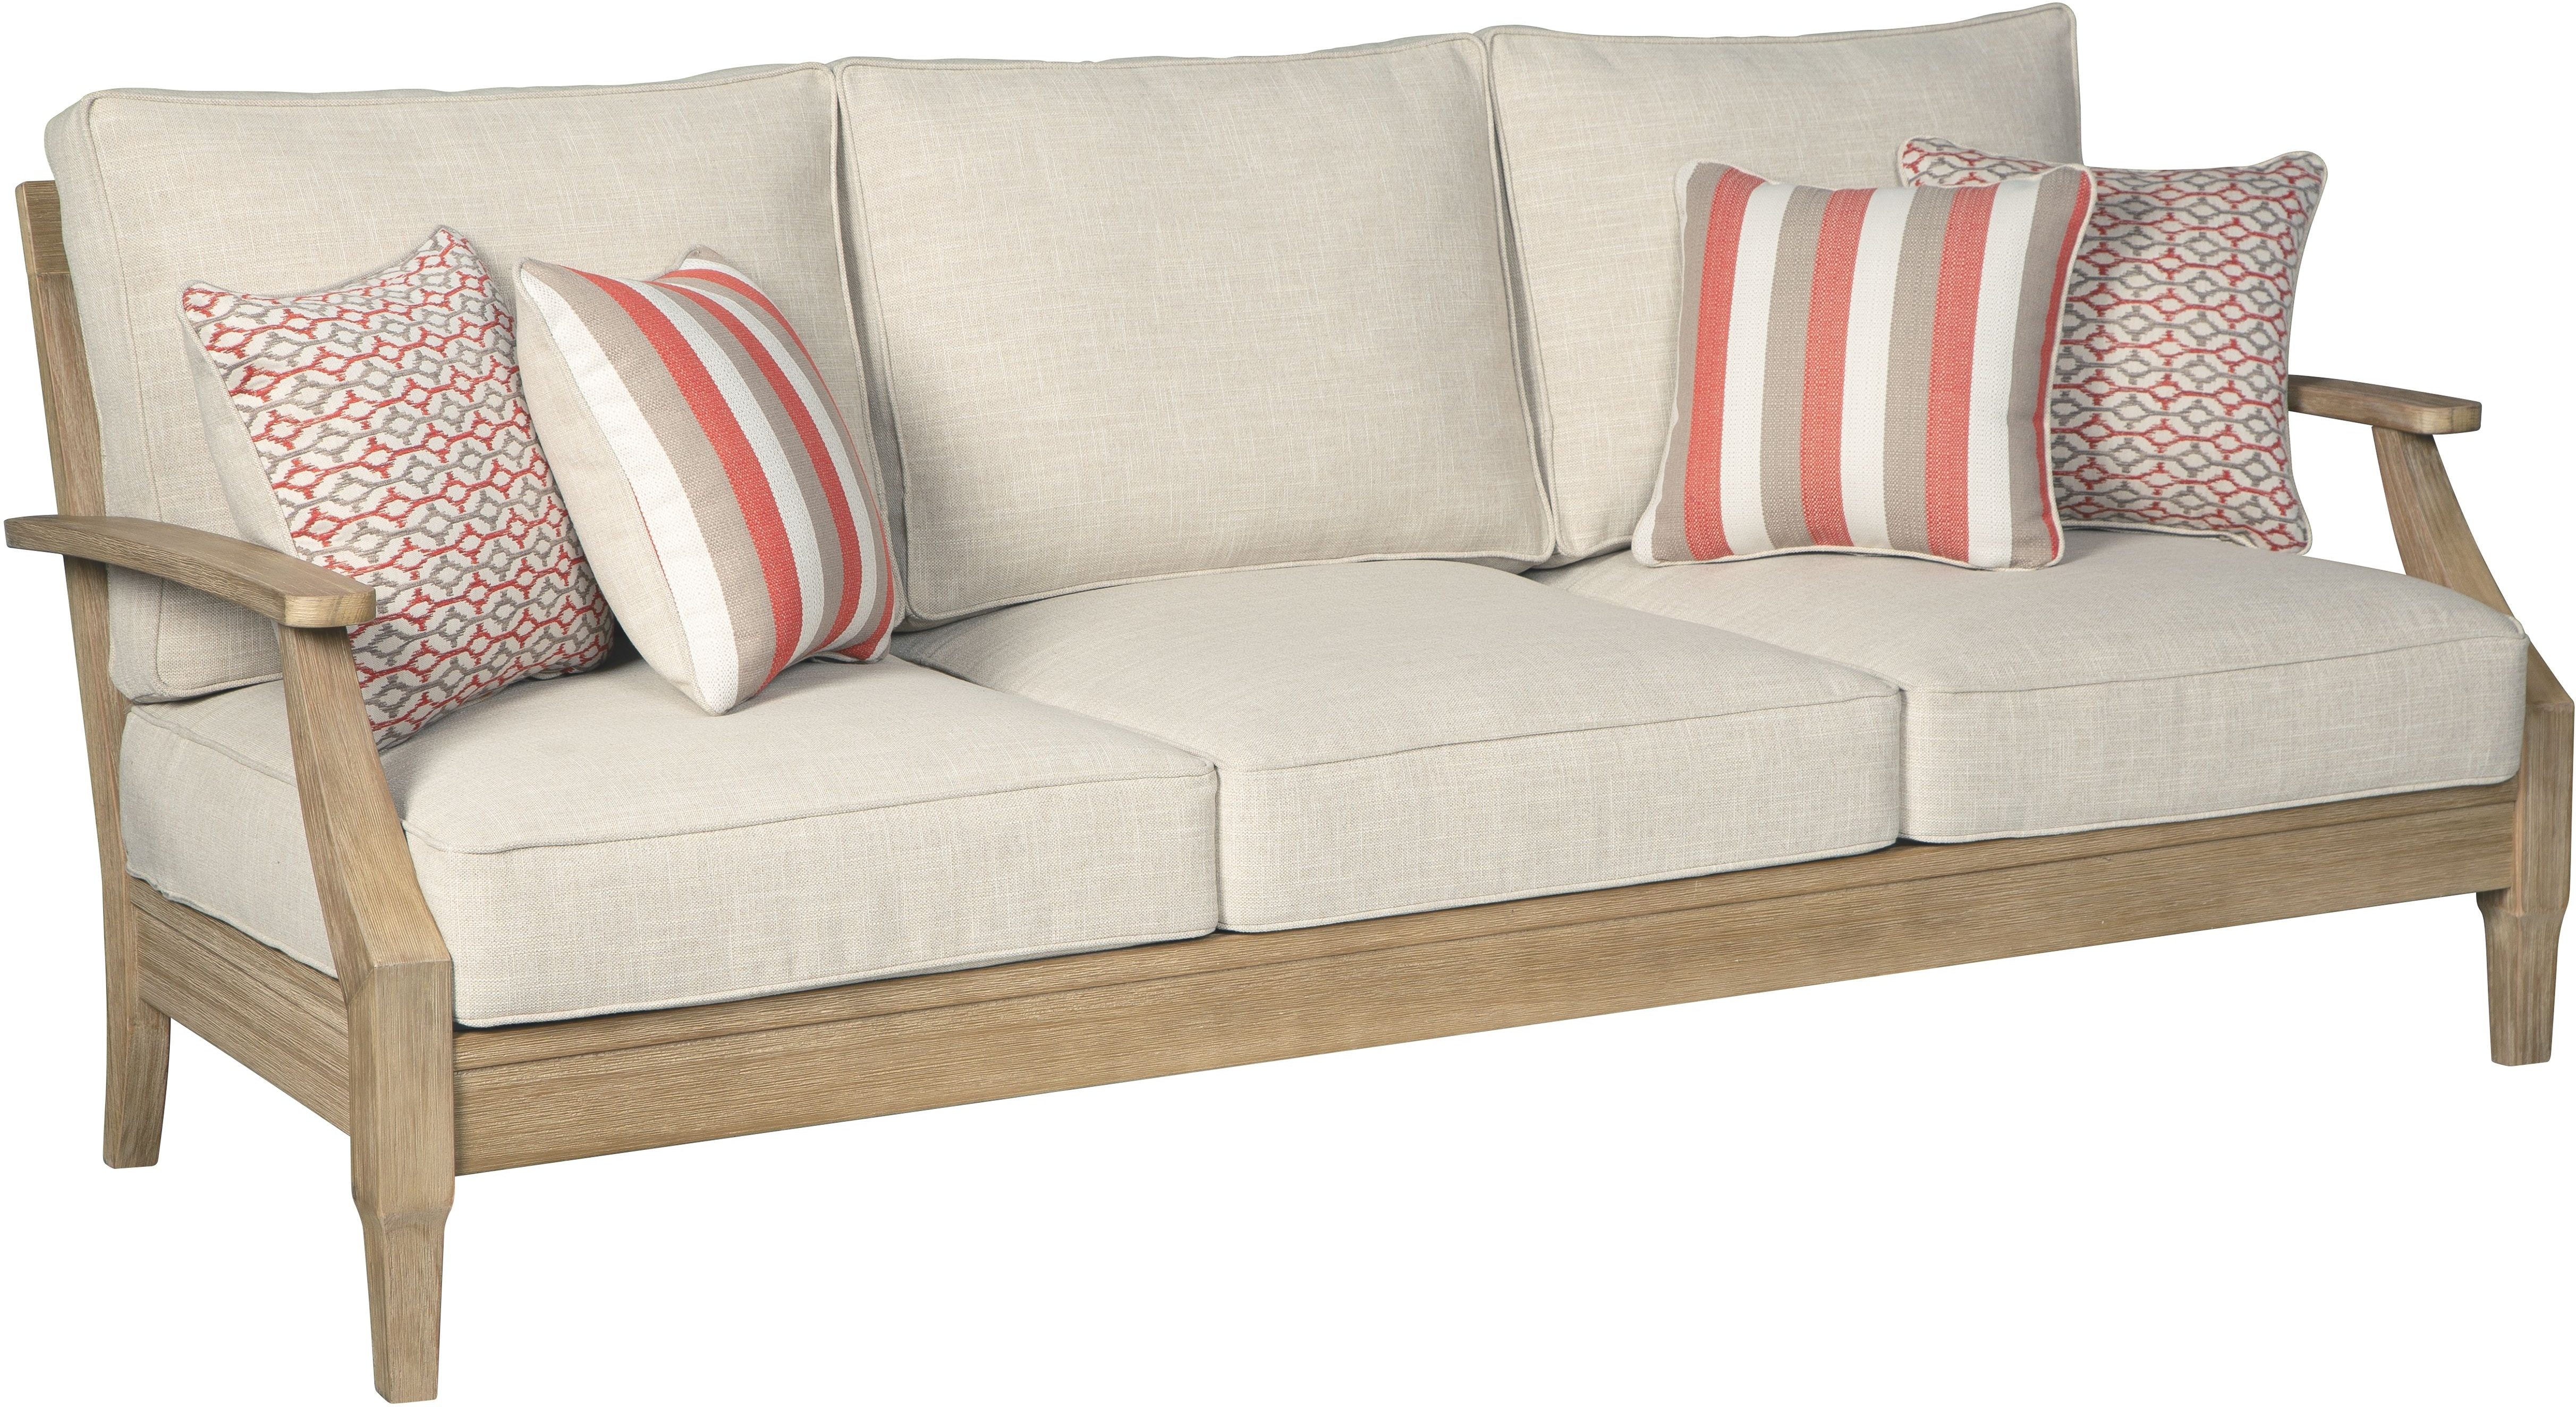 Signature Design by Ashley Outdoor/Patio Clare View Sofa ... on Clare View Beige Outdoor Living Room id=95118